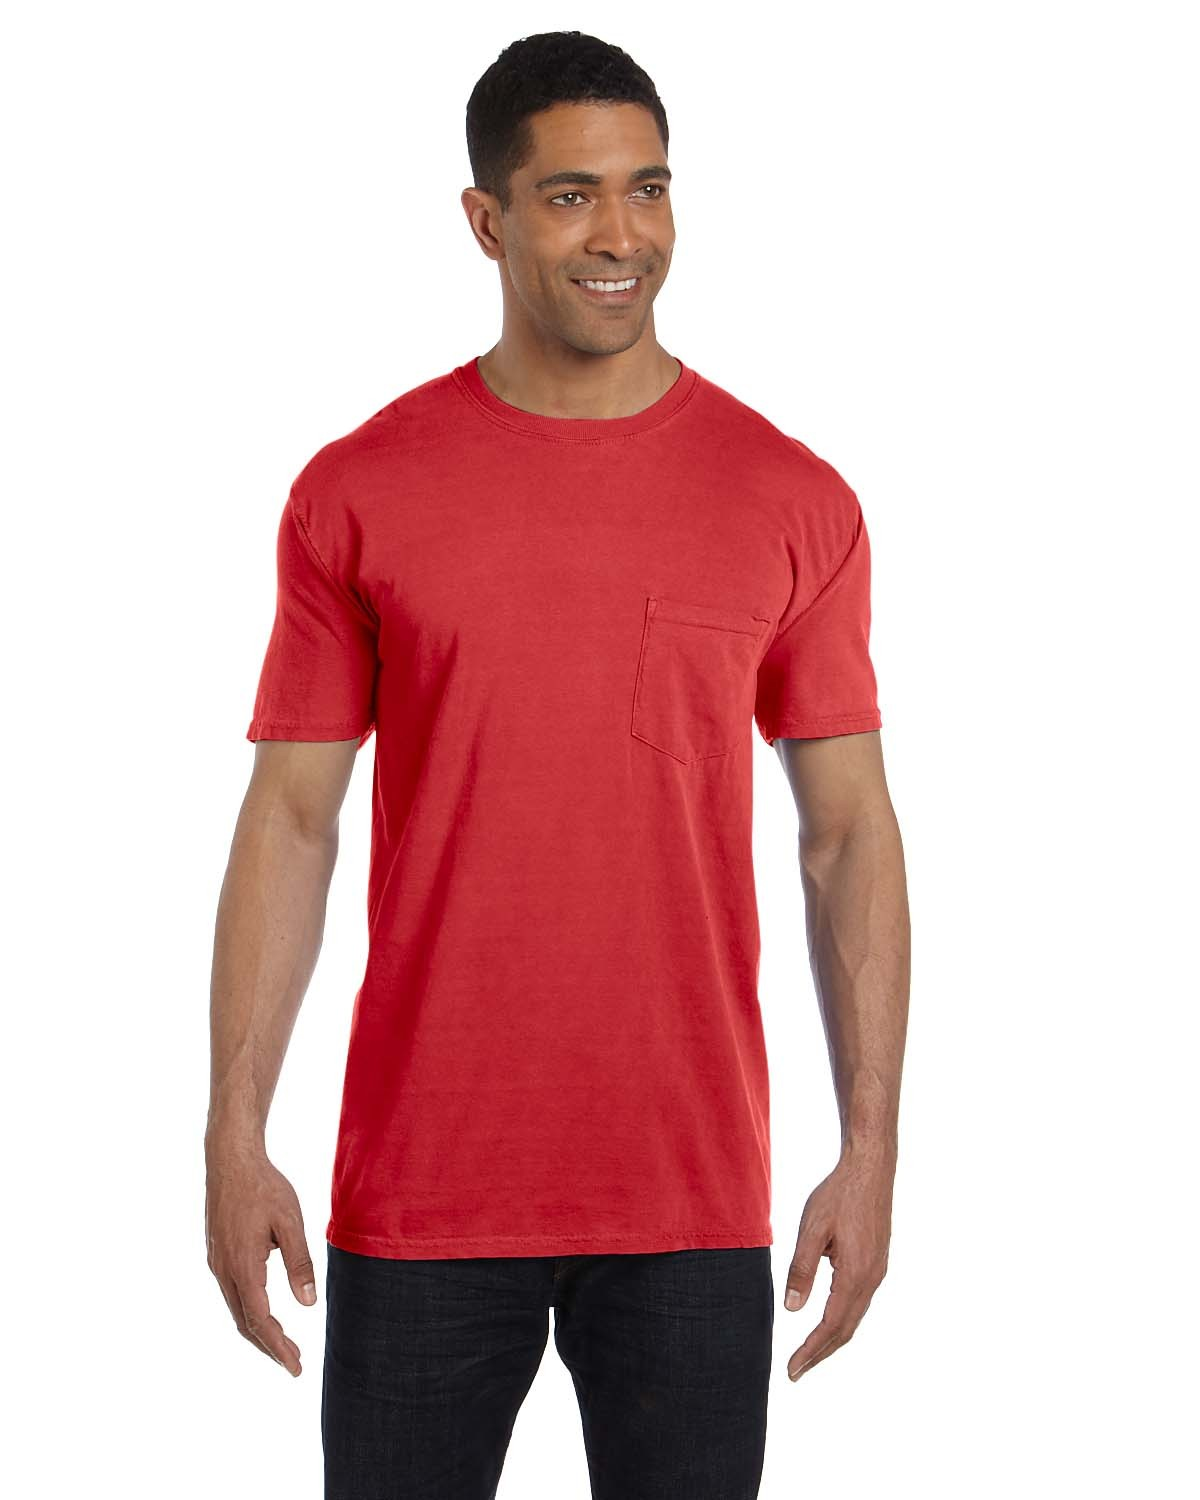 6030CC Comfort Colors RED